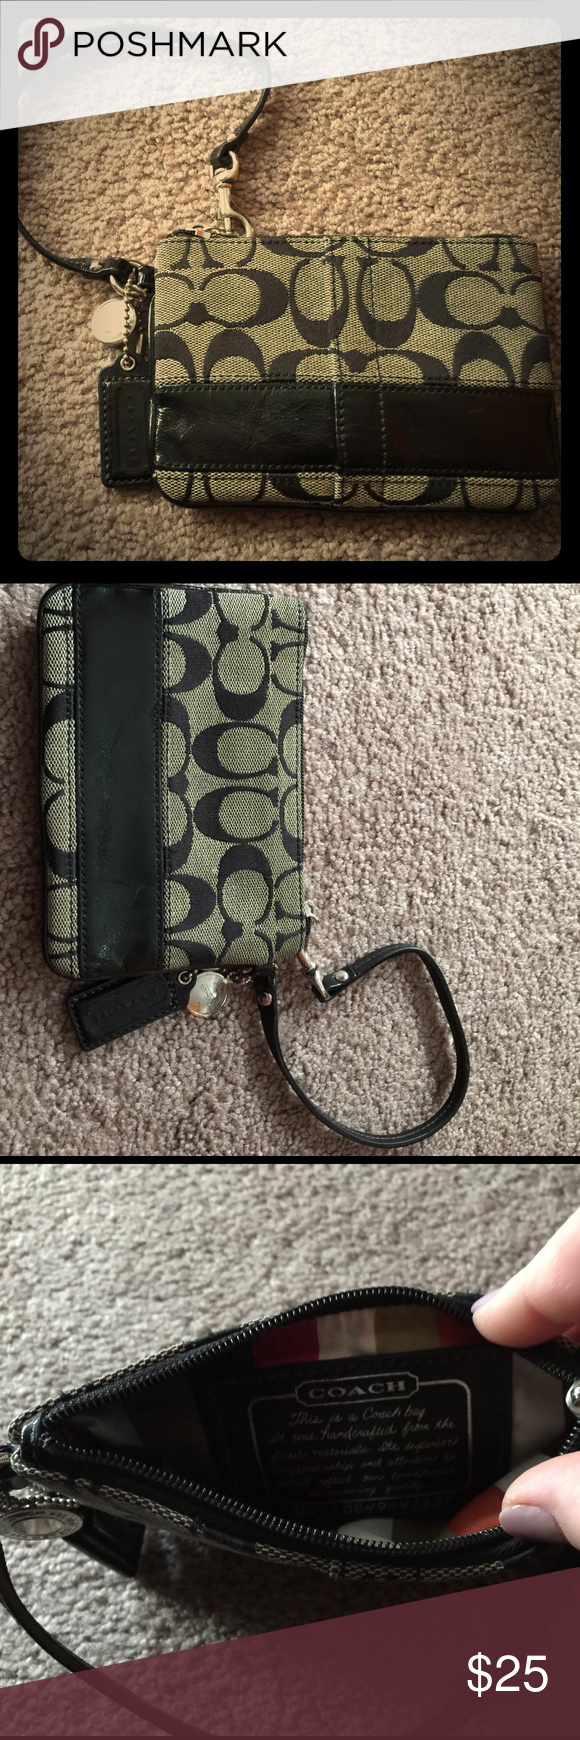 Coach wristlet Used wristlet. Make an offer. Coach Bags Clutches & Wristlets